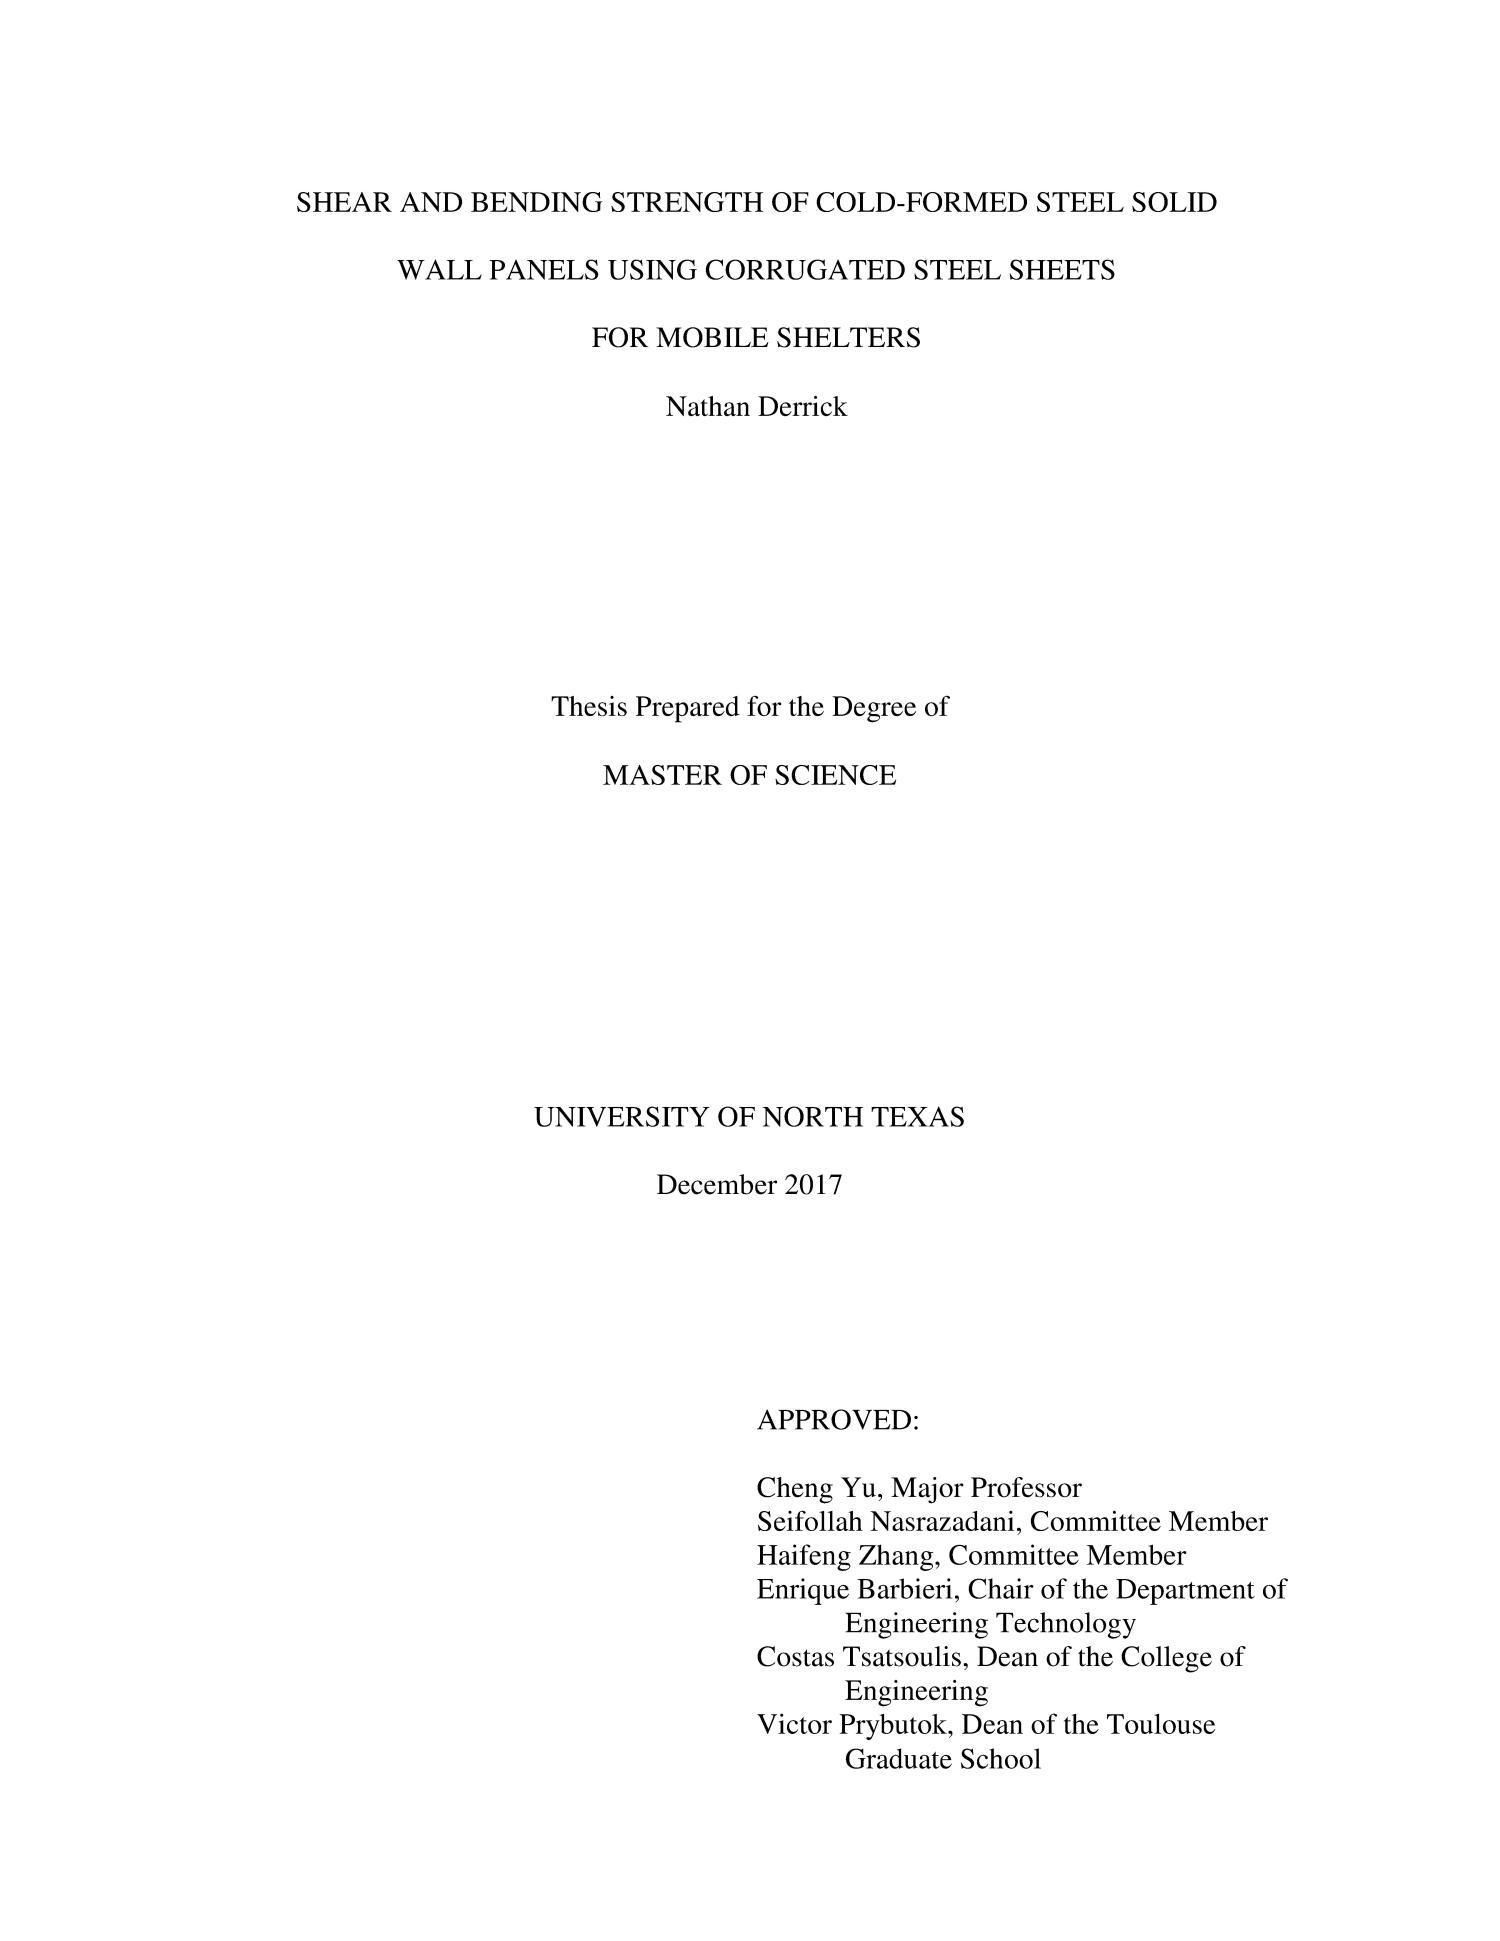 Shear and Bending Strength of Cold-Formed Steel Solid Wall Panels Using Corrugated Steel Sheets for Mobile Shelters                                                                                                      Title Page